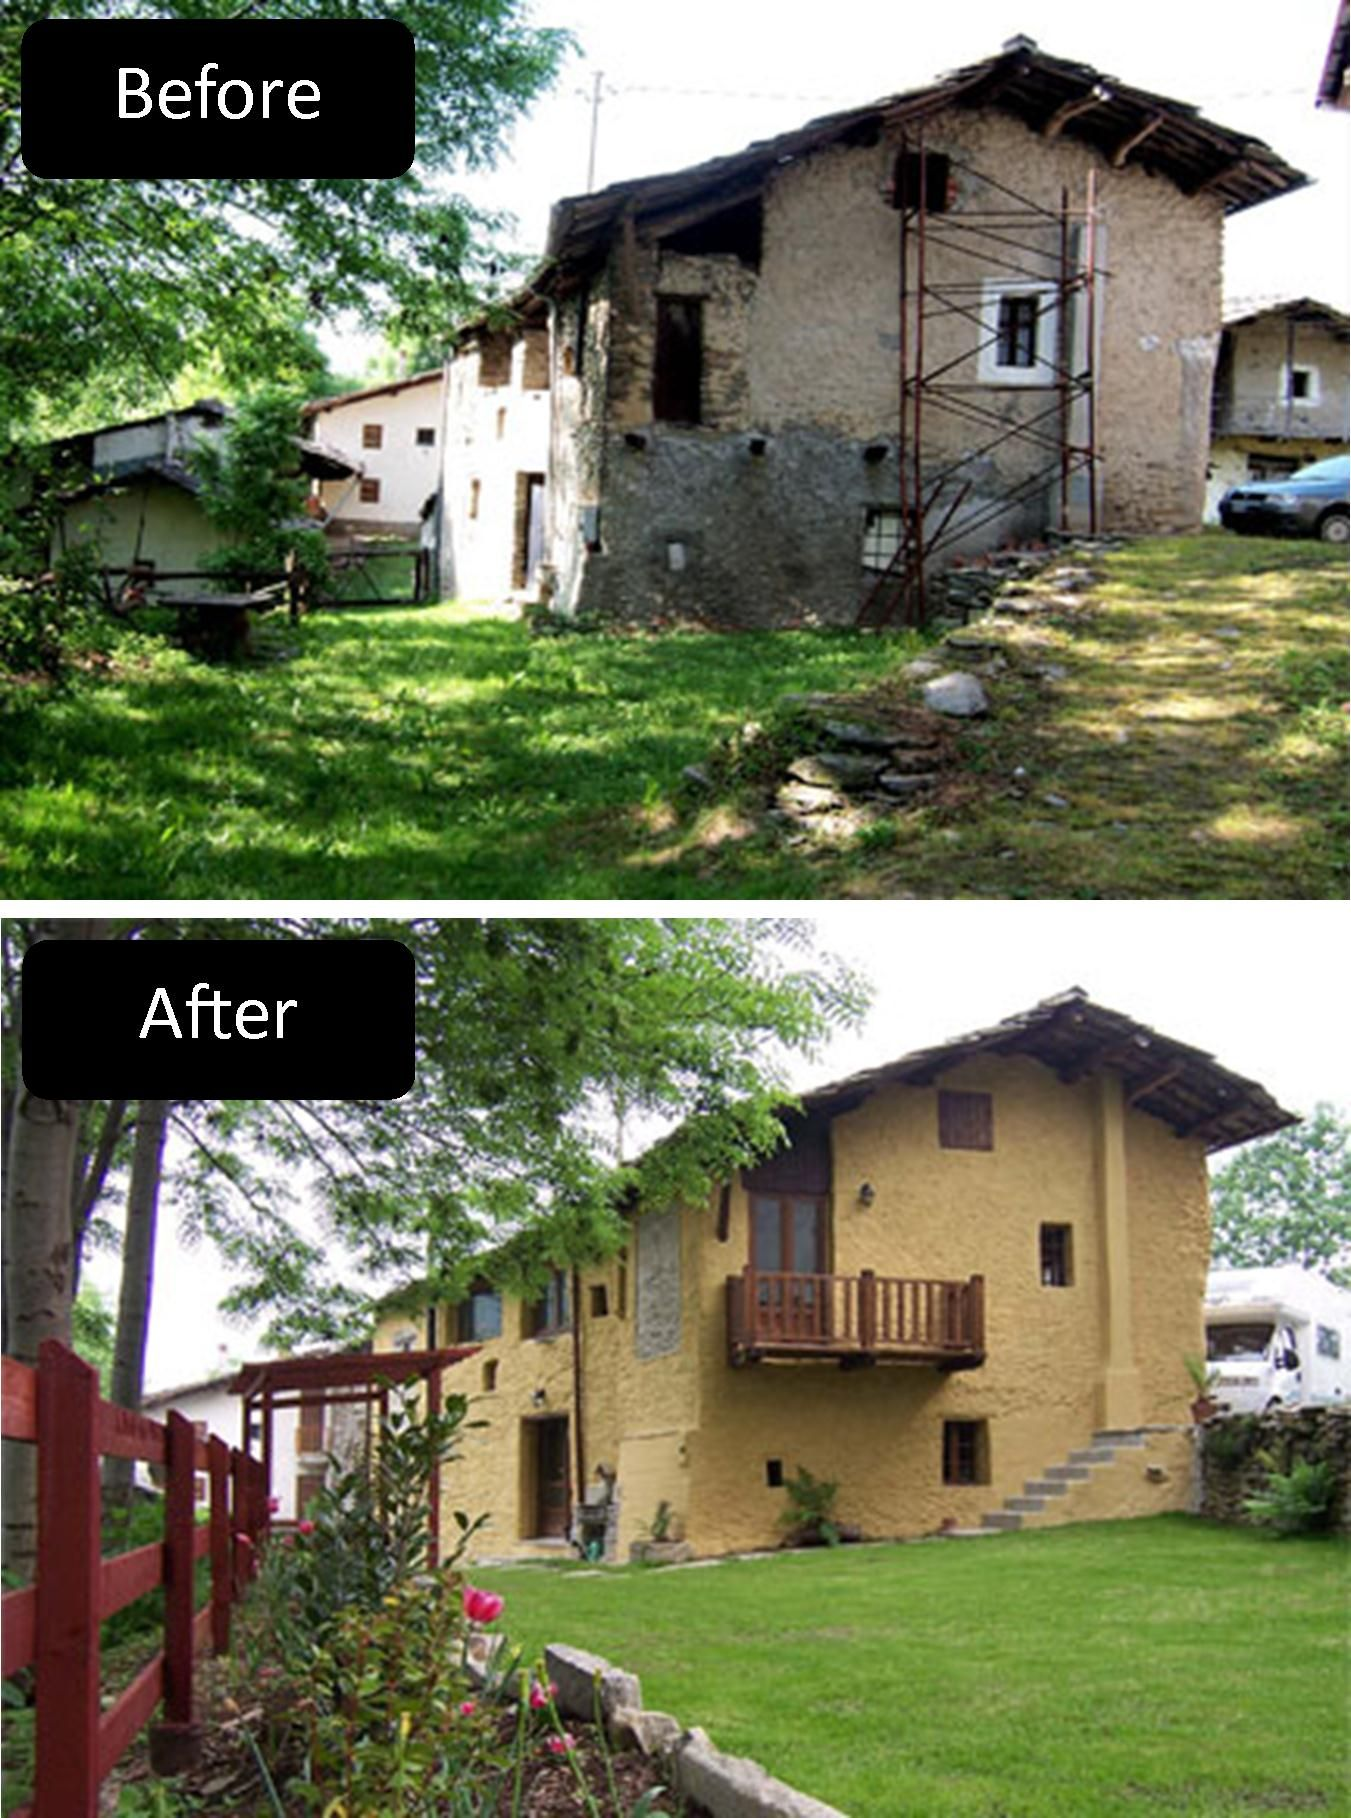 renovation in italy. #italy #home #renovation | travel | pinterest